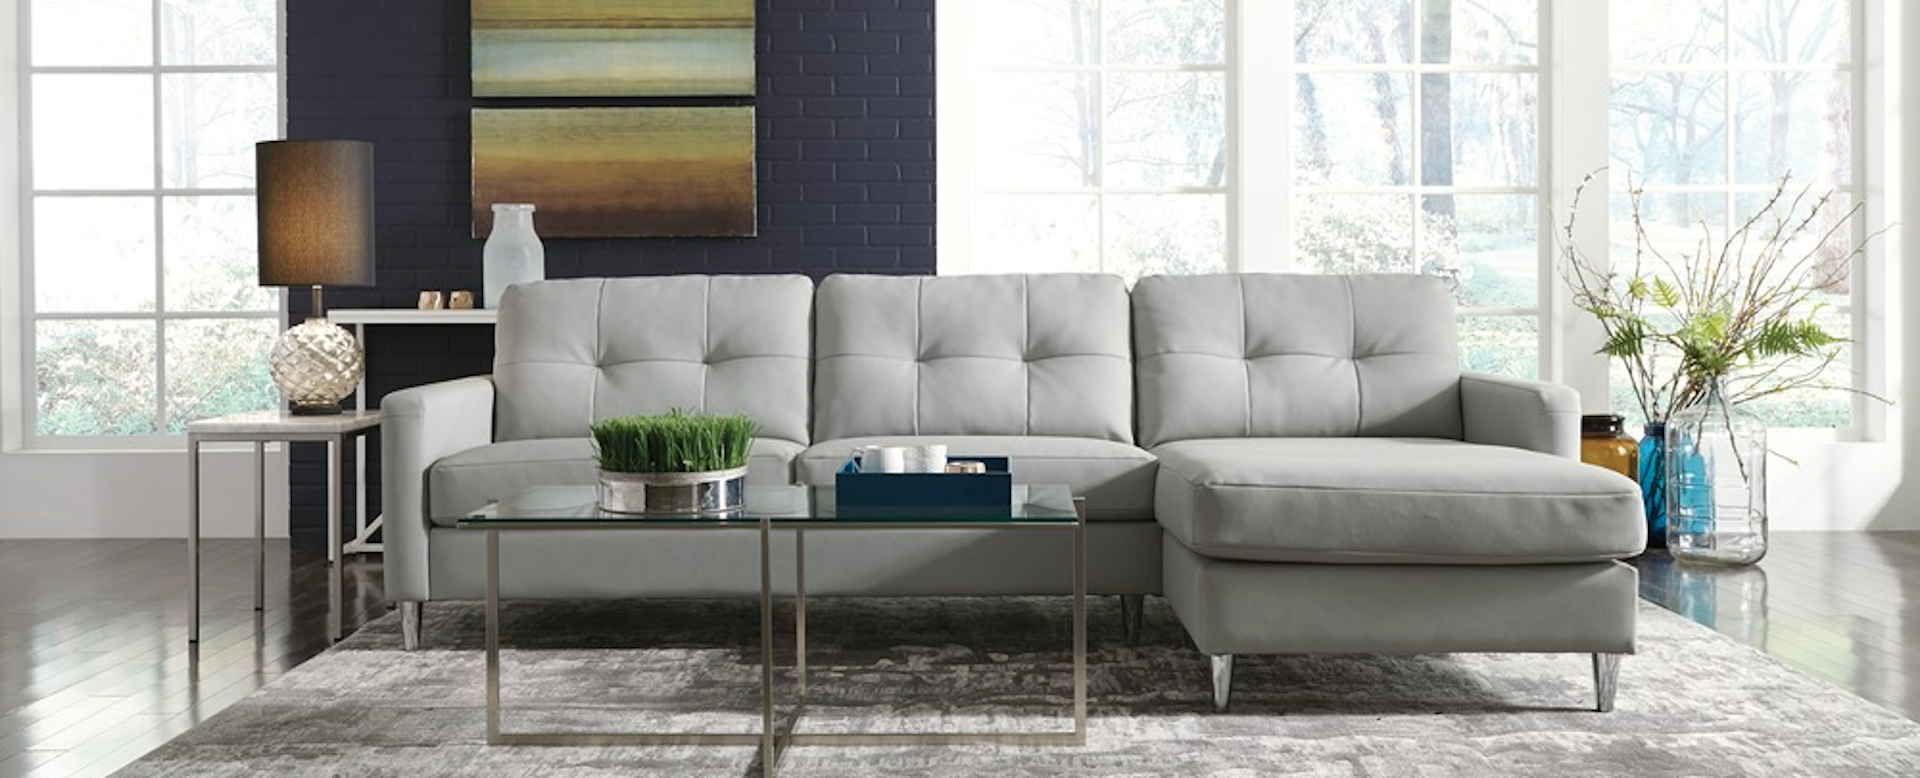 Purchase Palliser Furniture Review